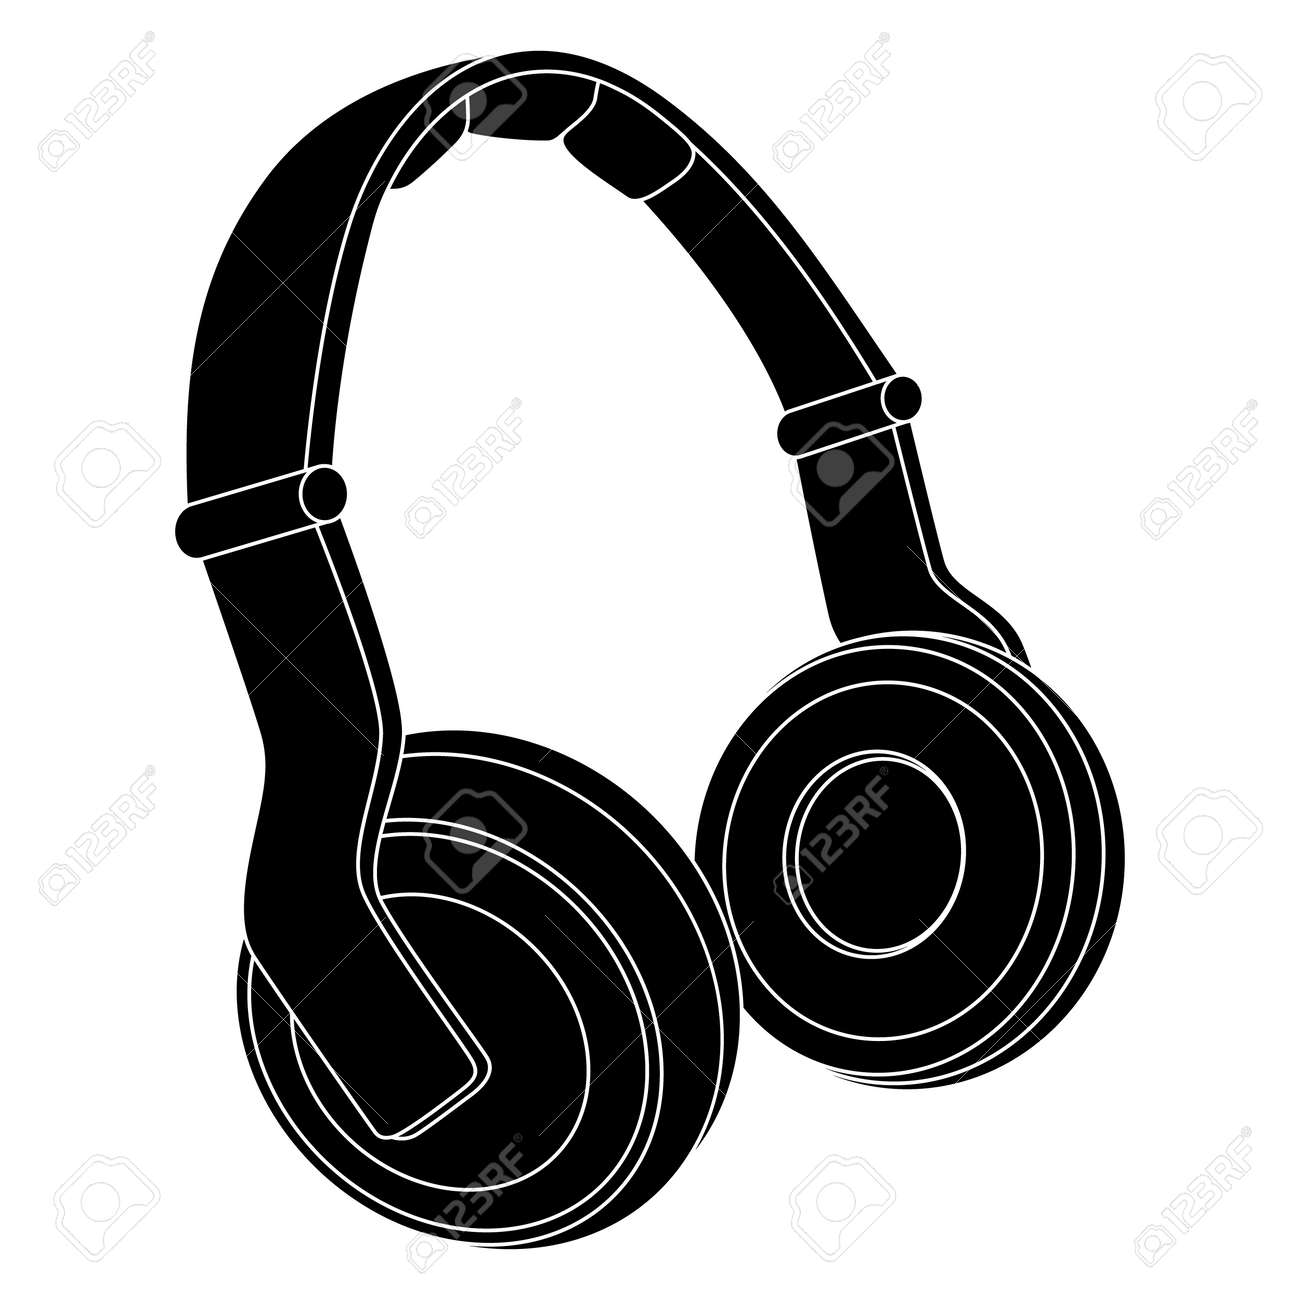 headphones vector illustration royalty free cliparts vectors and rh 123rf com headphones vector image headphones vector freepik